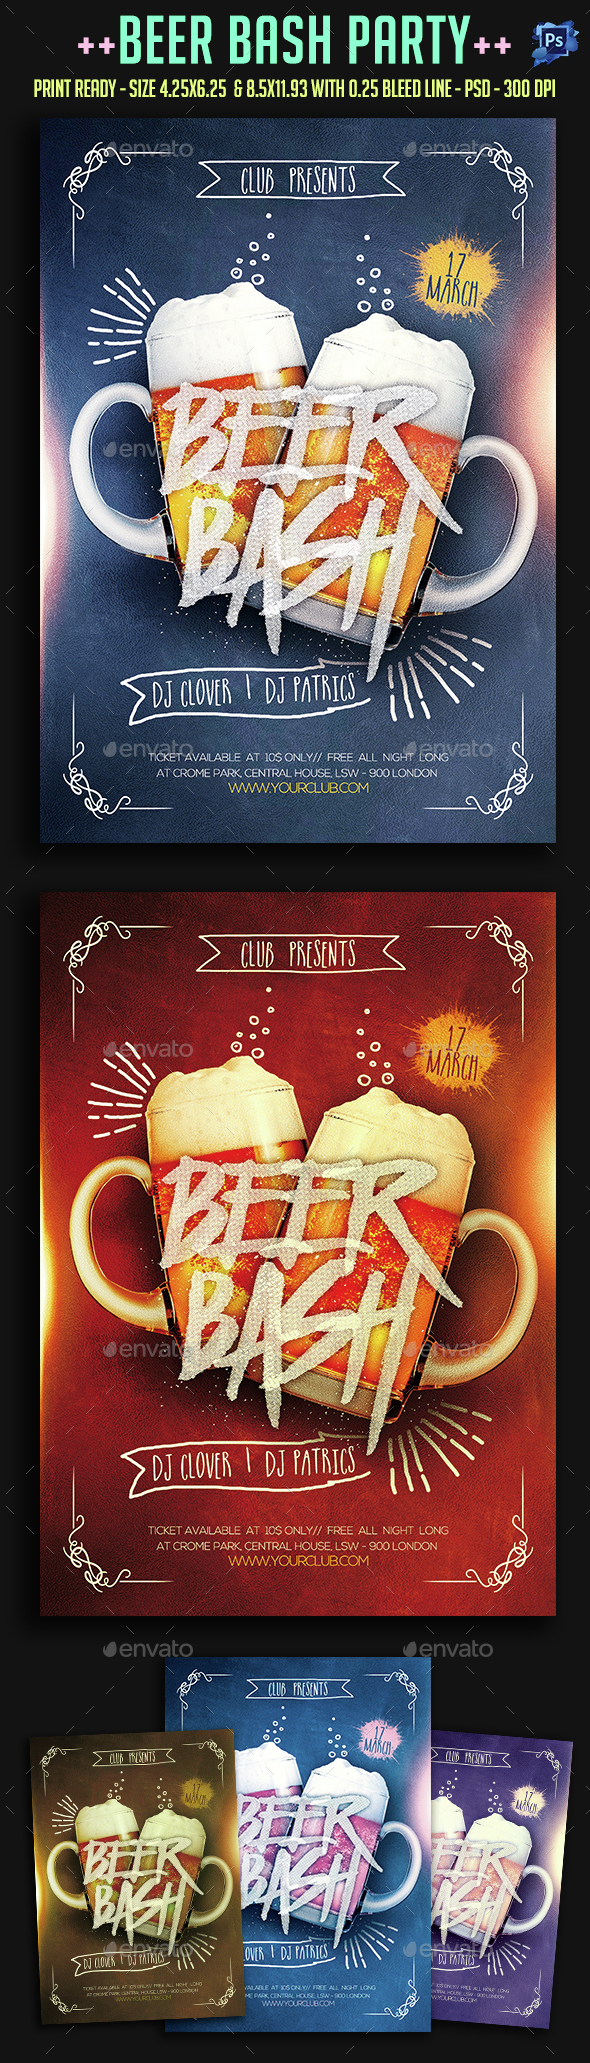 Beer Bash Party Flyer - Clubs & Parties Events